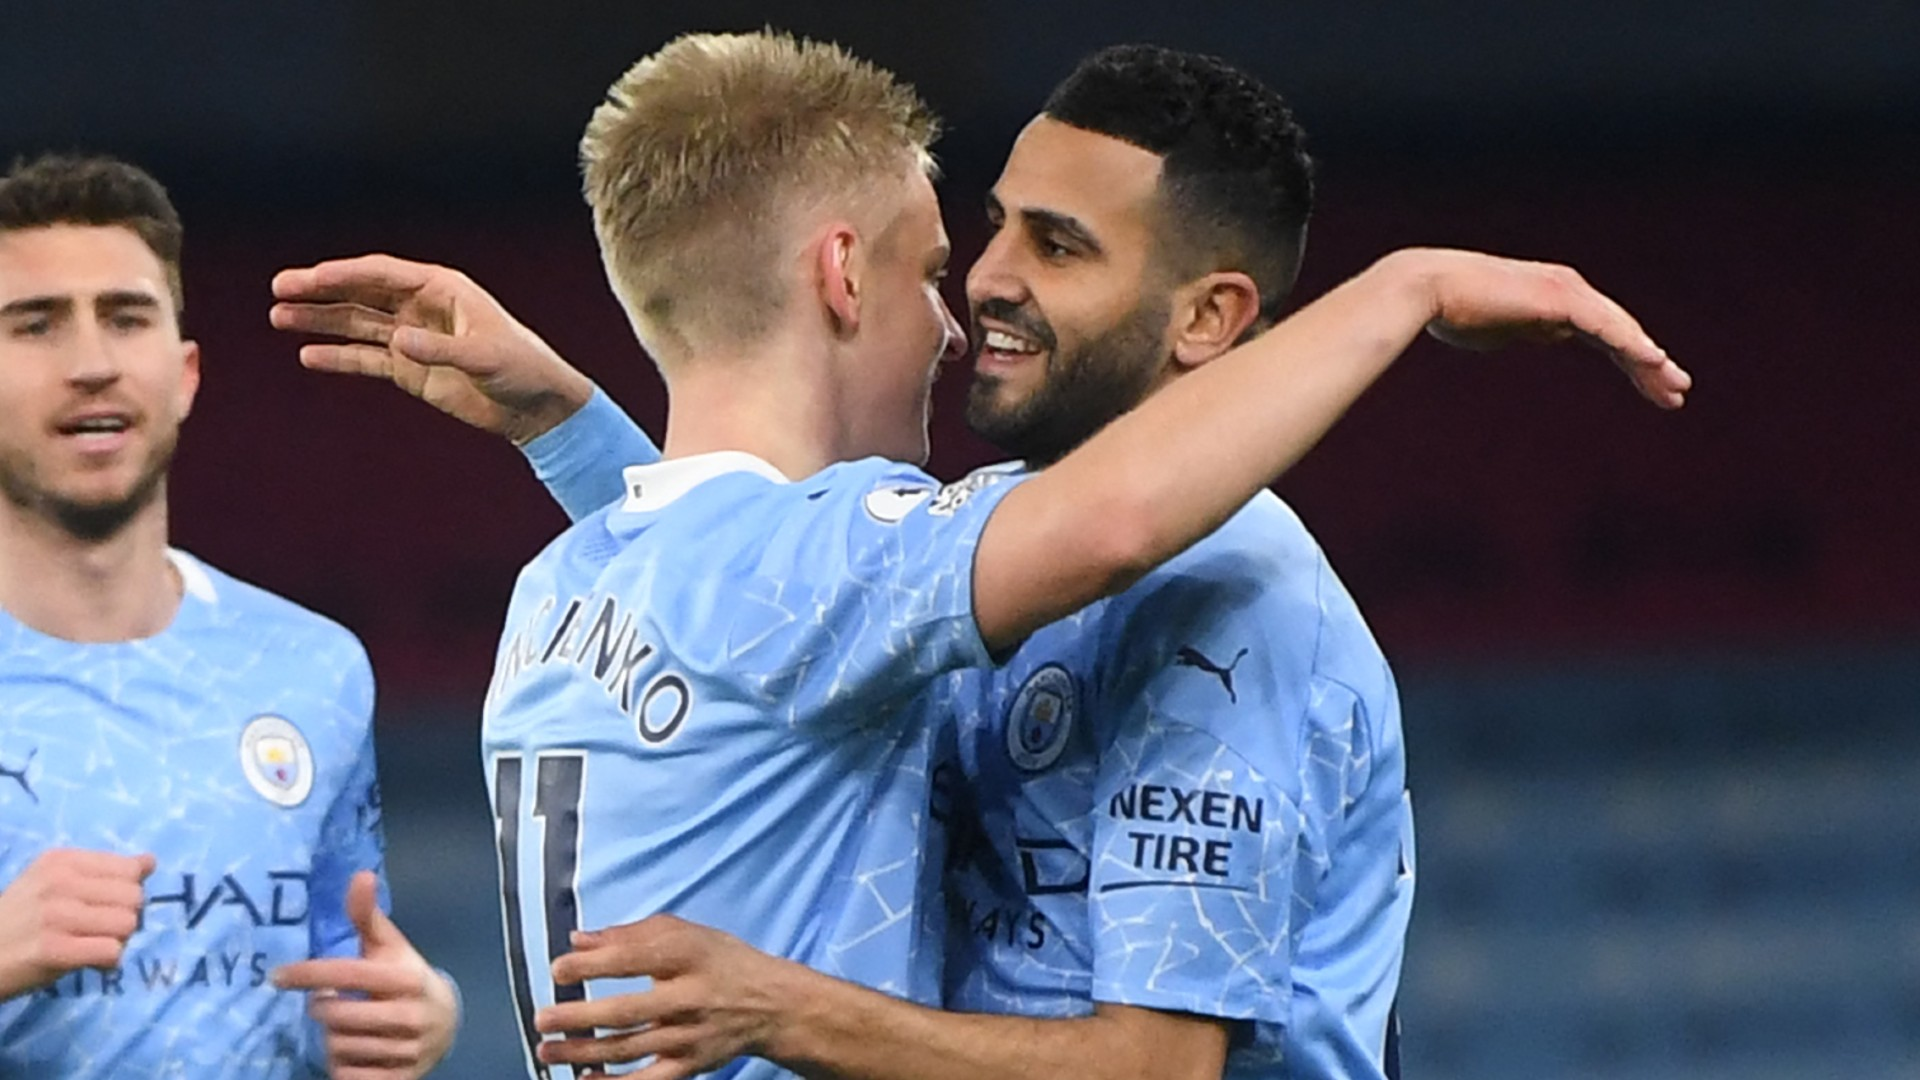 'Incredible' Mahrez lauded as the best Premier League player after Manchester City heroics